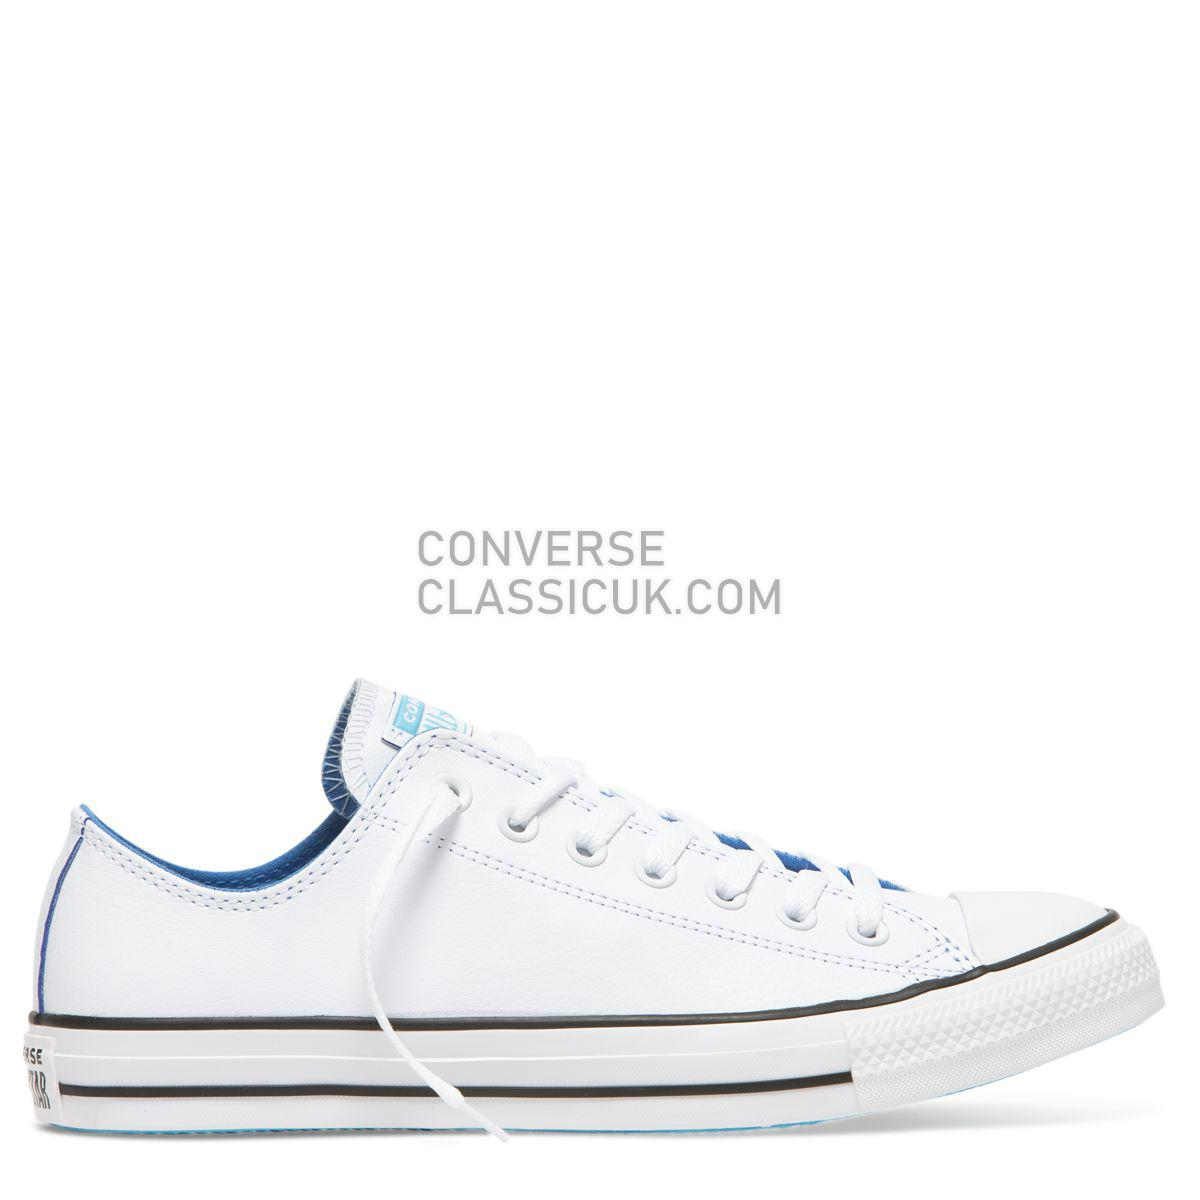 Converse Chuck Taylor All Star SL Low Top White Mens Womens Unisex 165667 White/Totally Blue/White Shoes